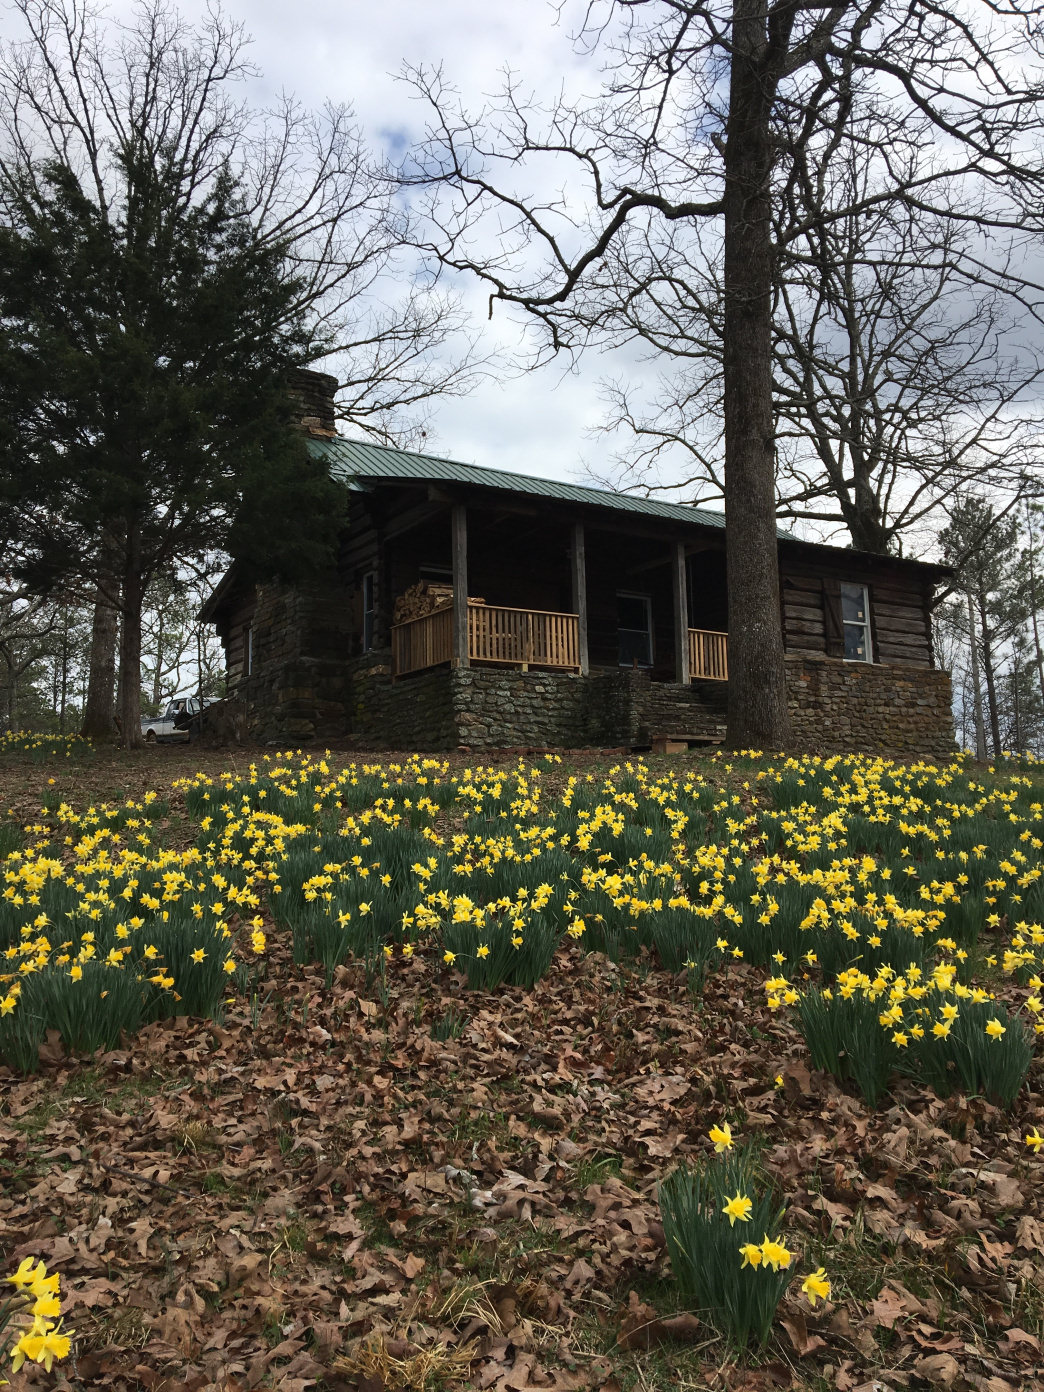 Eberhart is now the caretaker on top of historic Flagg Mountain in Weogufka, Alabama, where work is underway to restore the CCC cabins and fire tower from 1935.